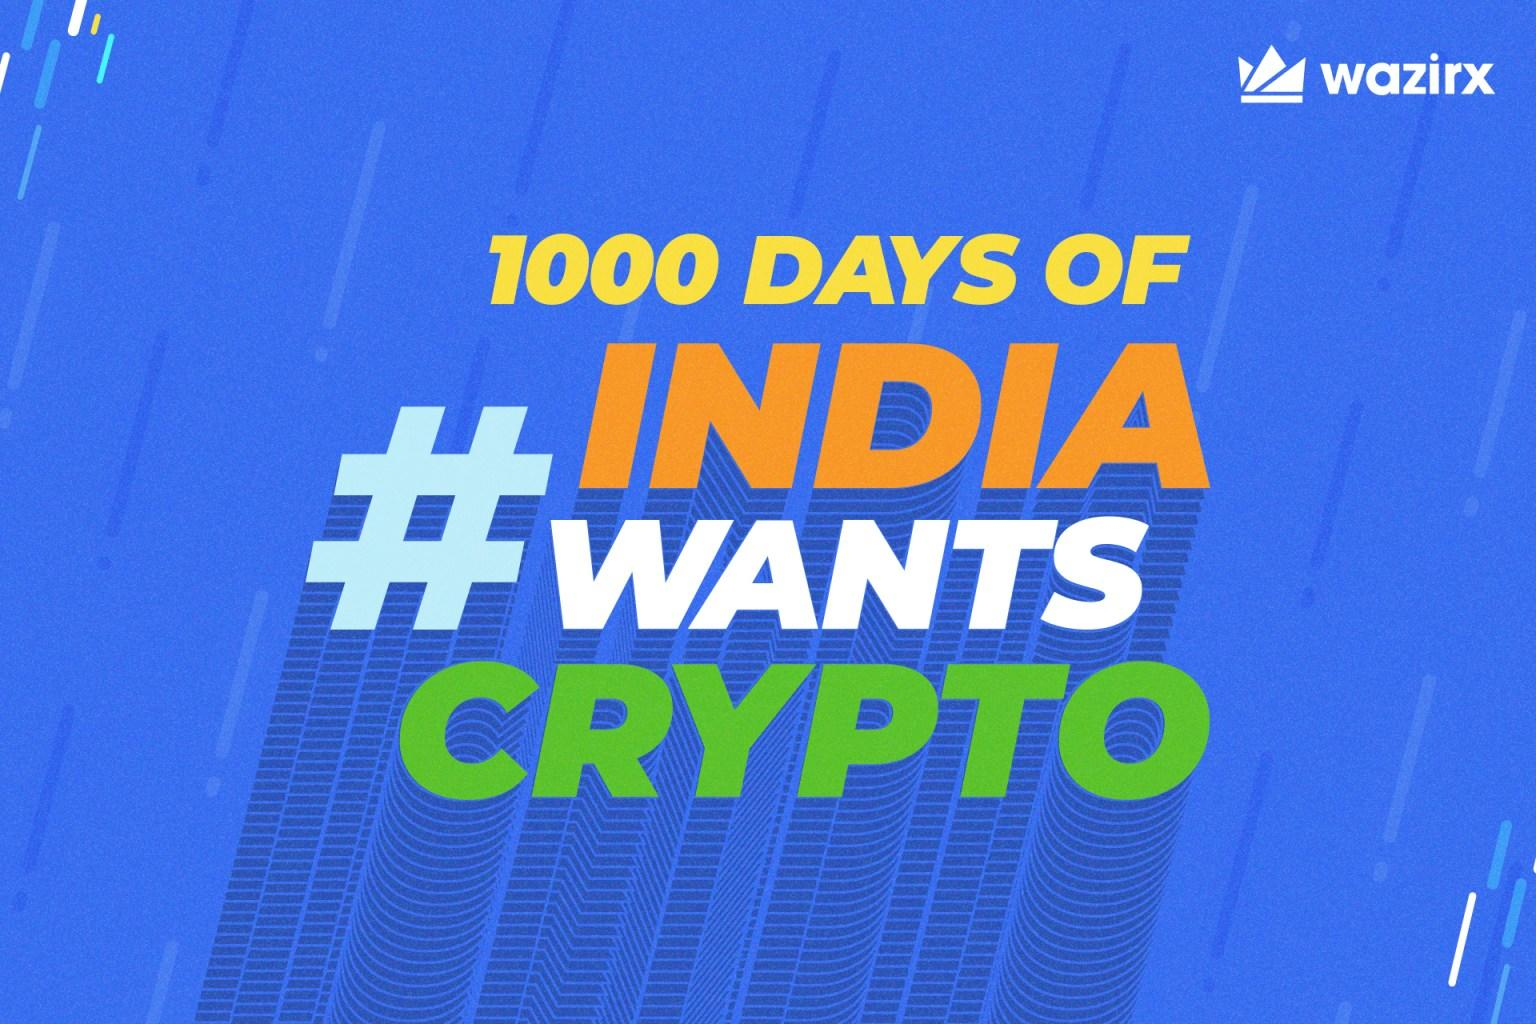 India's stance on cryptocurrencies is evolving as more investors join the bandwagon